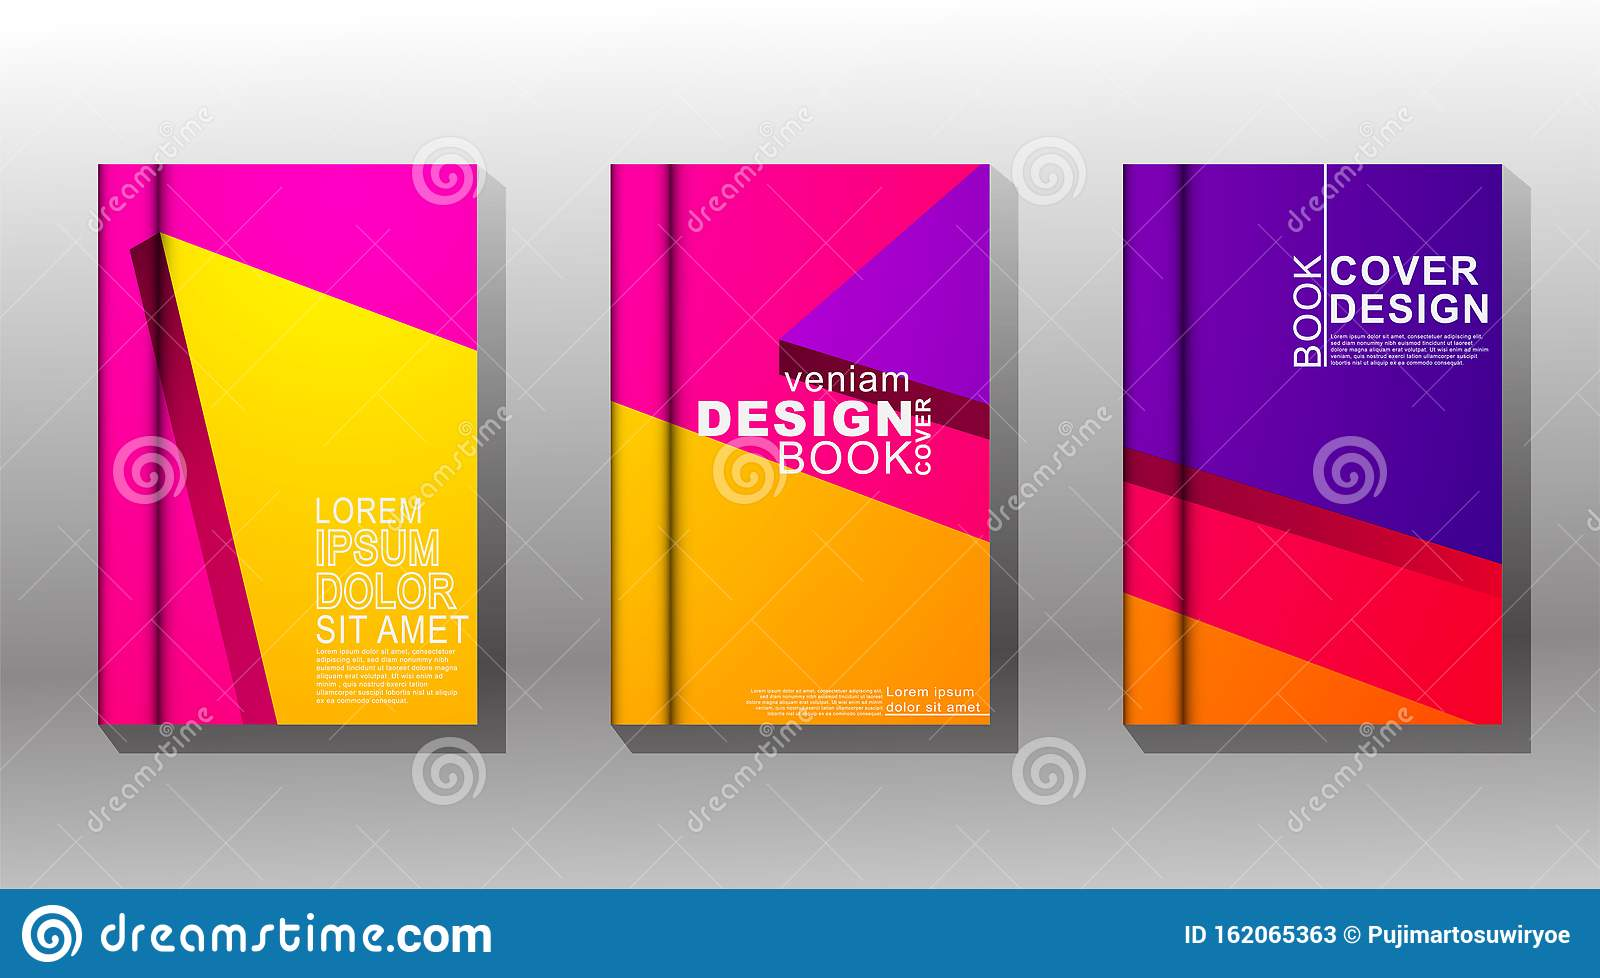 Minimal Book Cover Design With Geometric Shapes Colorful Vector Design Stock Vector Illustration Of Cover Modern 162065363